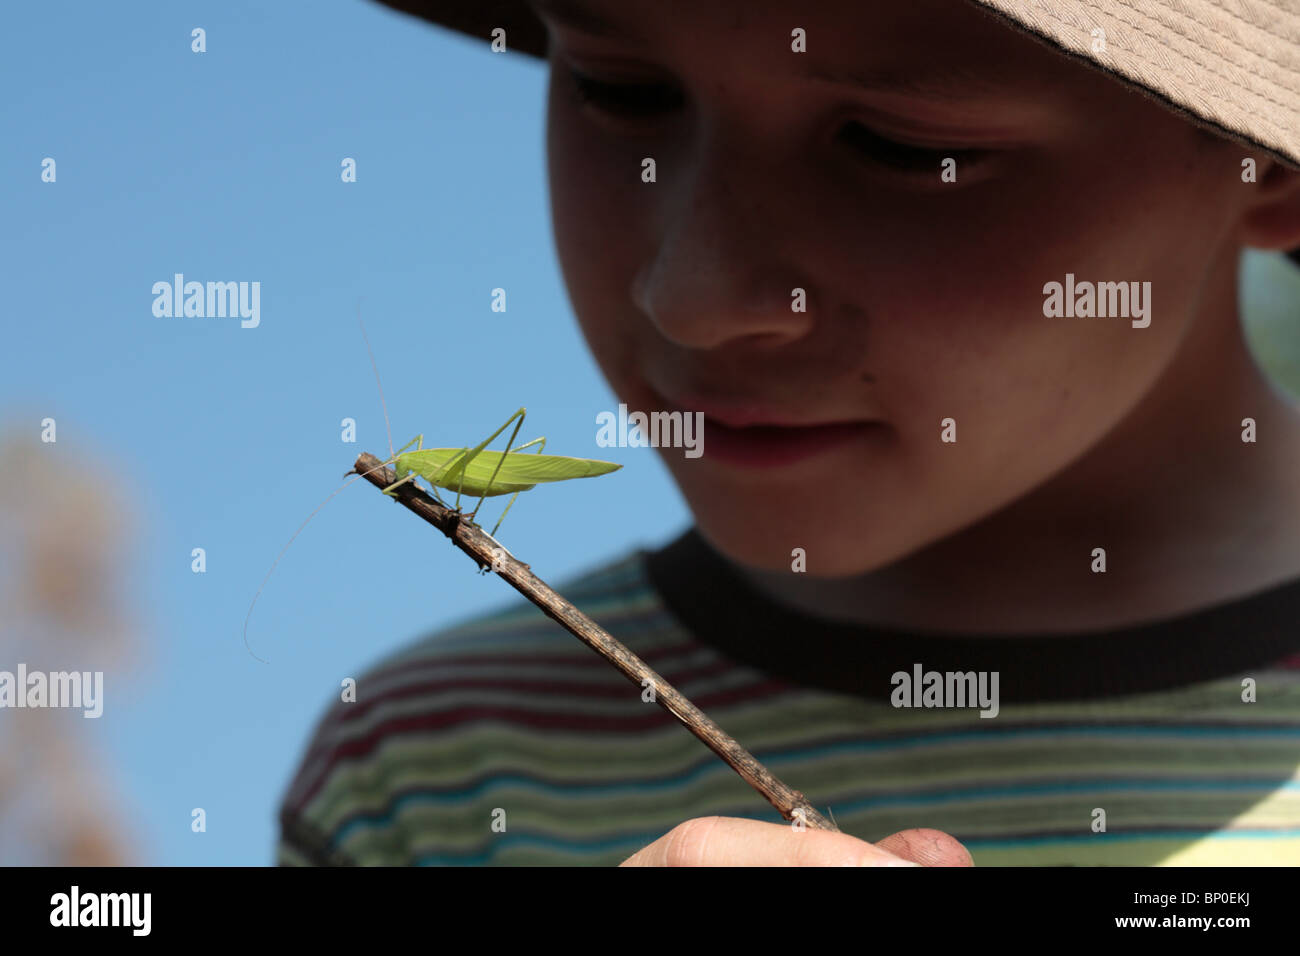 India, Kerala, Periyar National Park. A young boy observes a cricket on a twig. (MR) - Stock Image